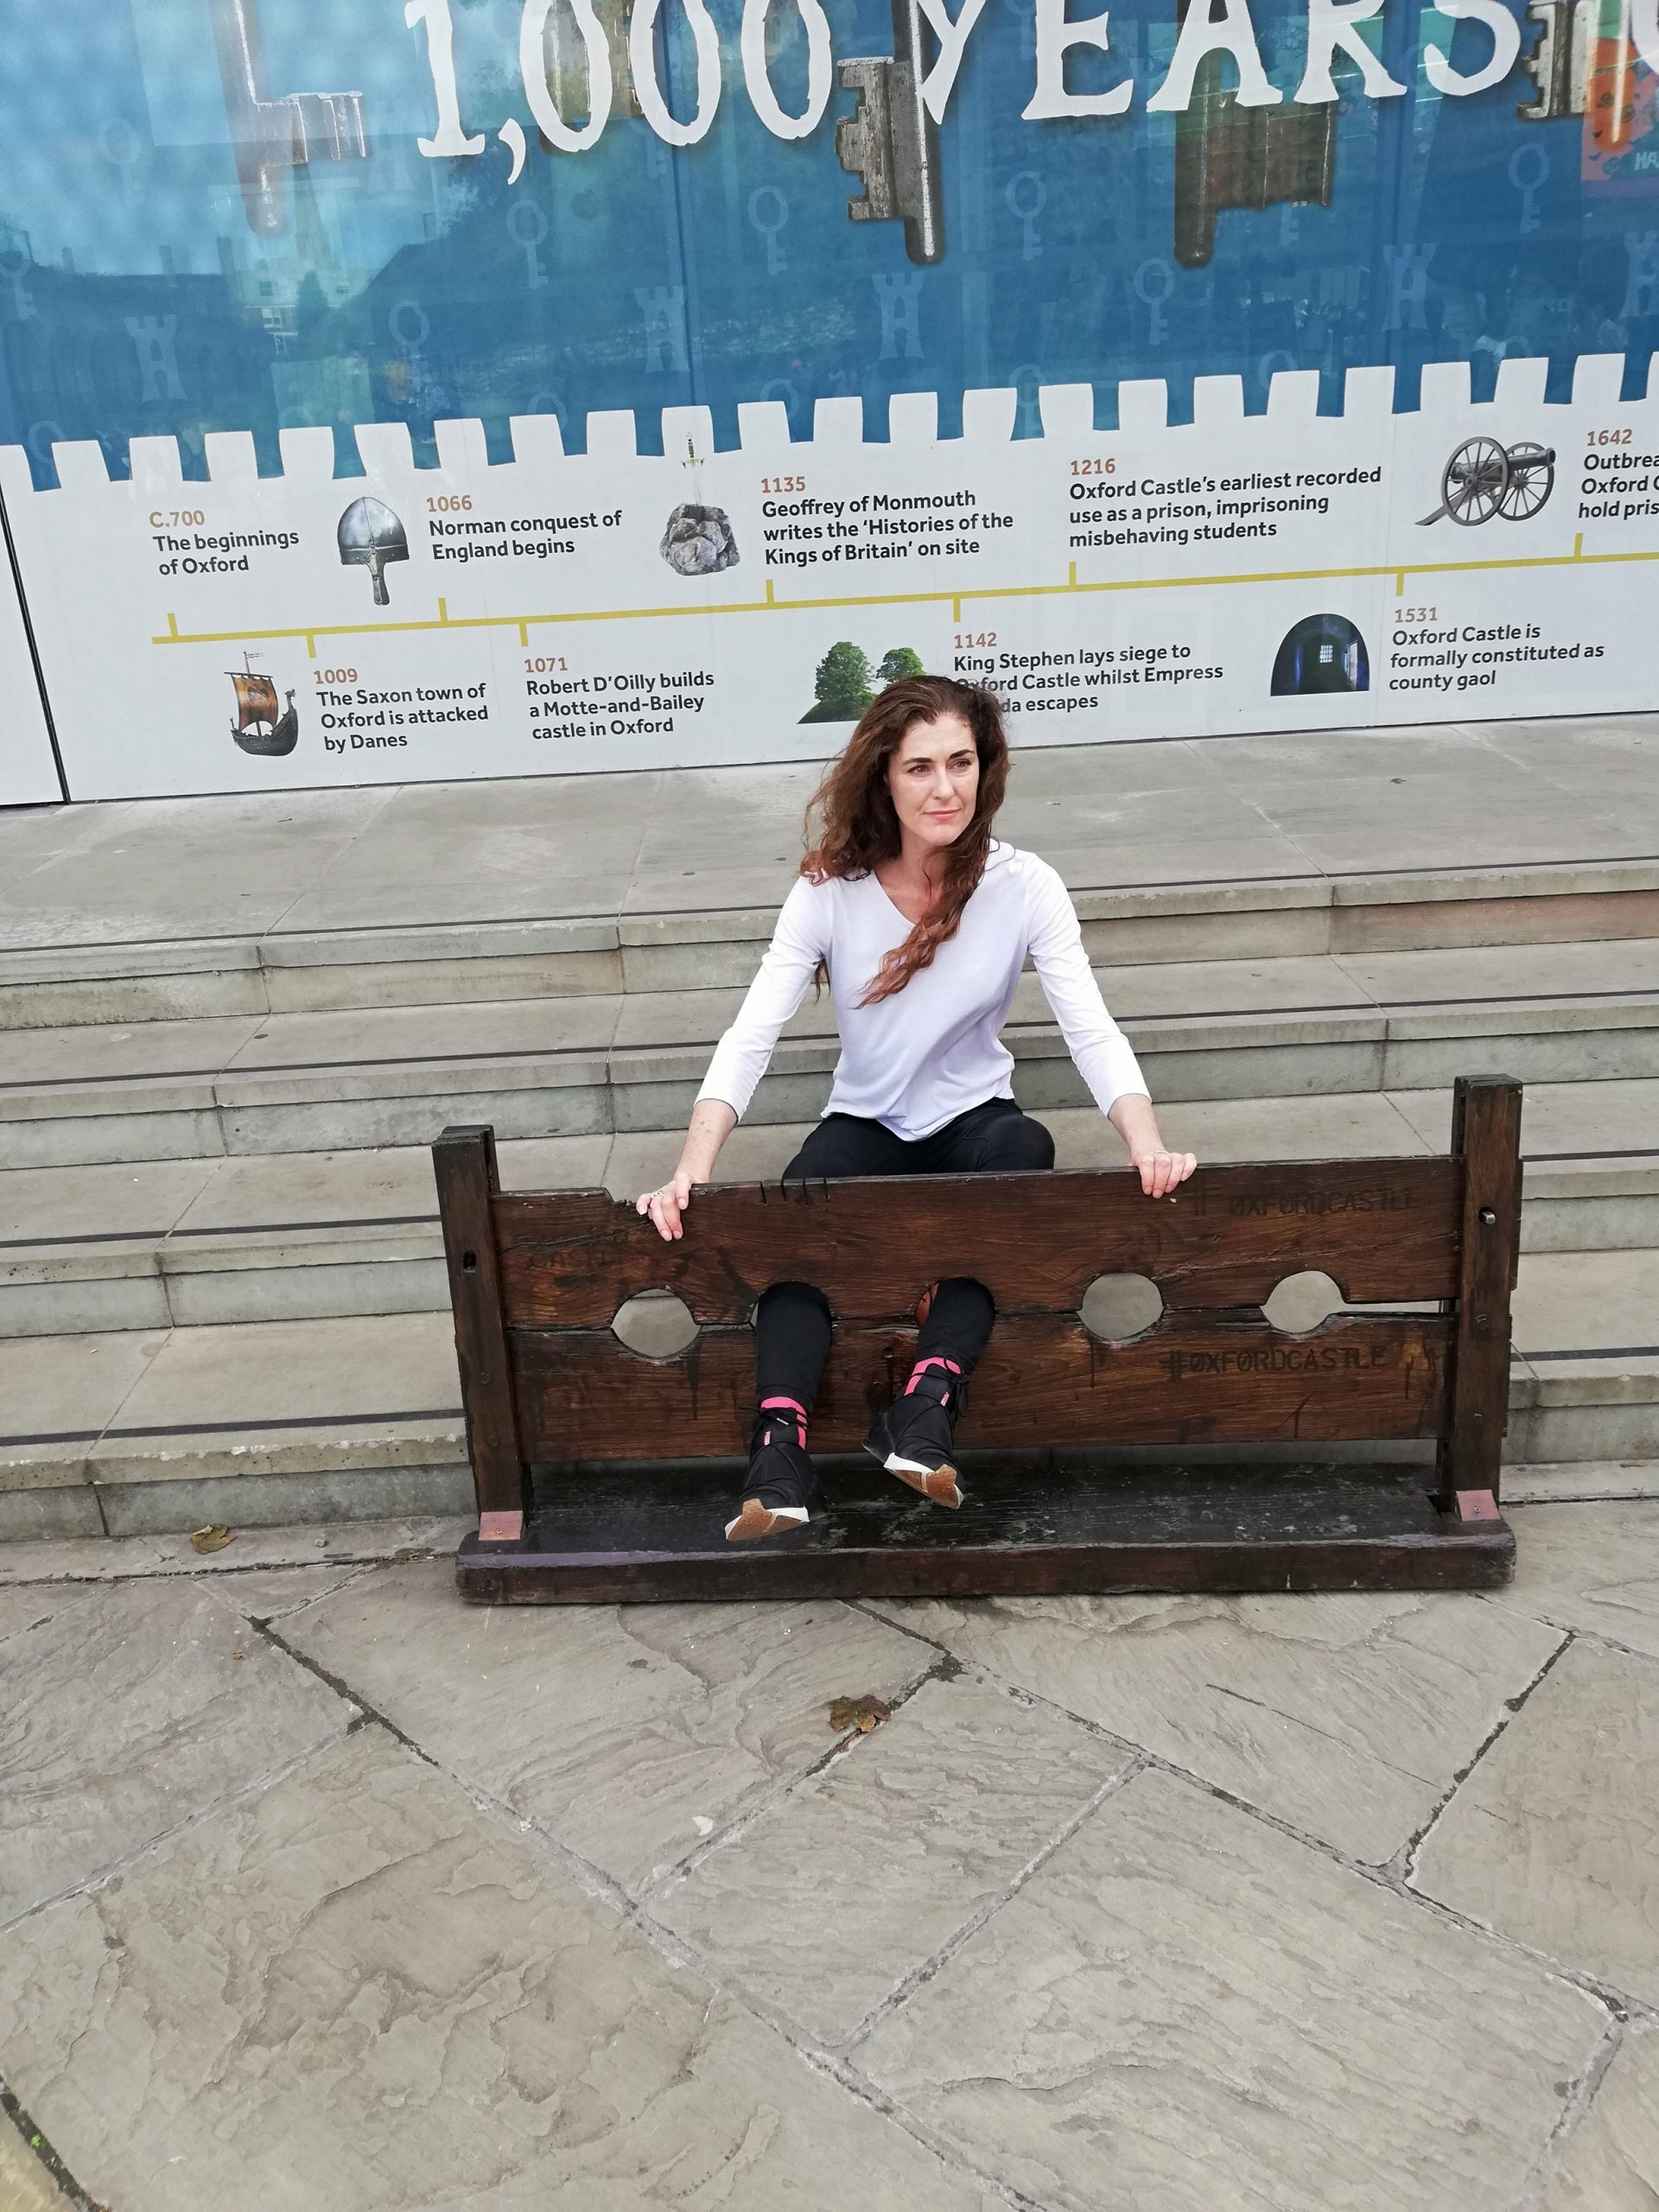 A day in the stocks, when your feet were locked into two wooden panels and you can't get out